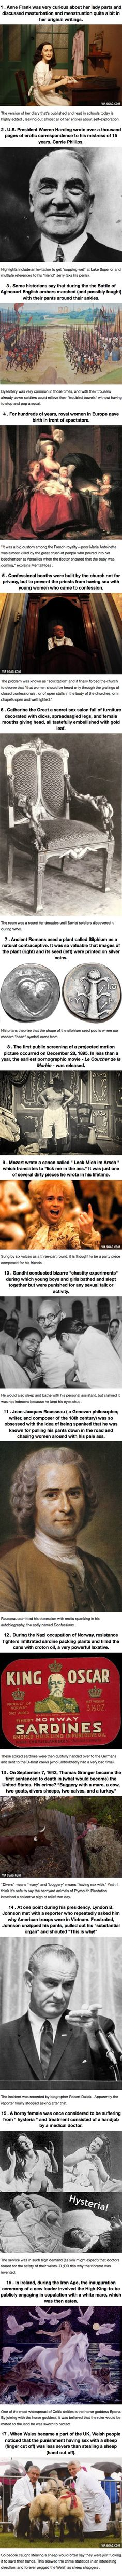 17 R-Rated History Facts They Don't Teach In School